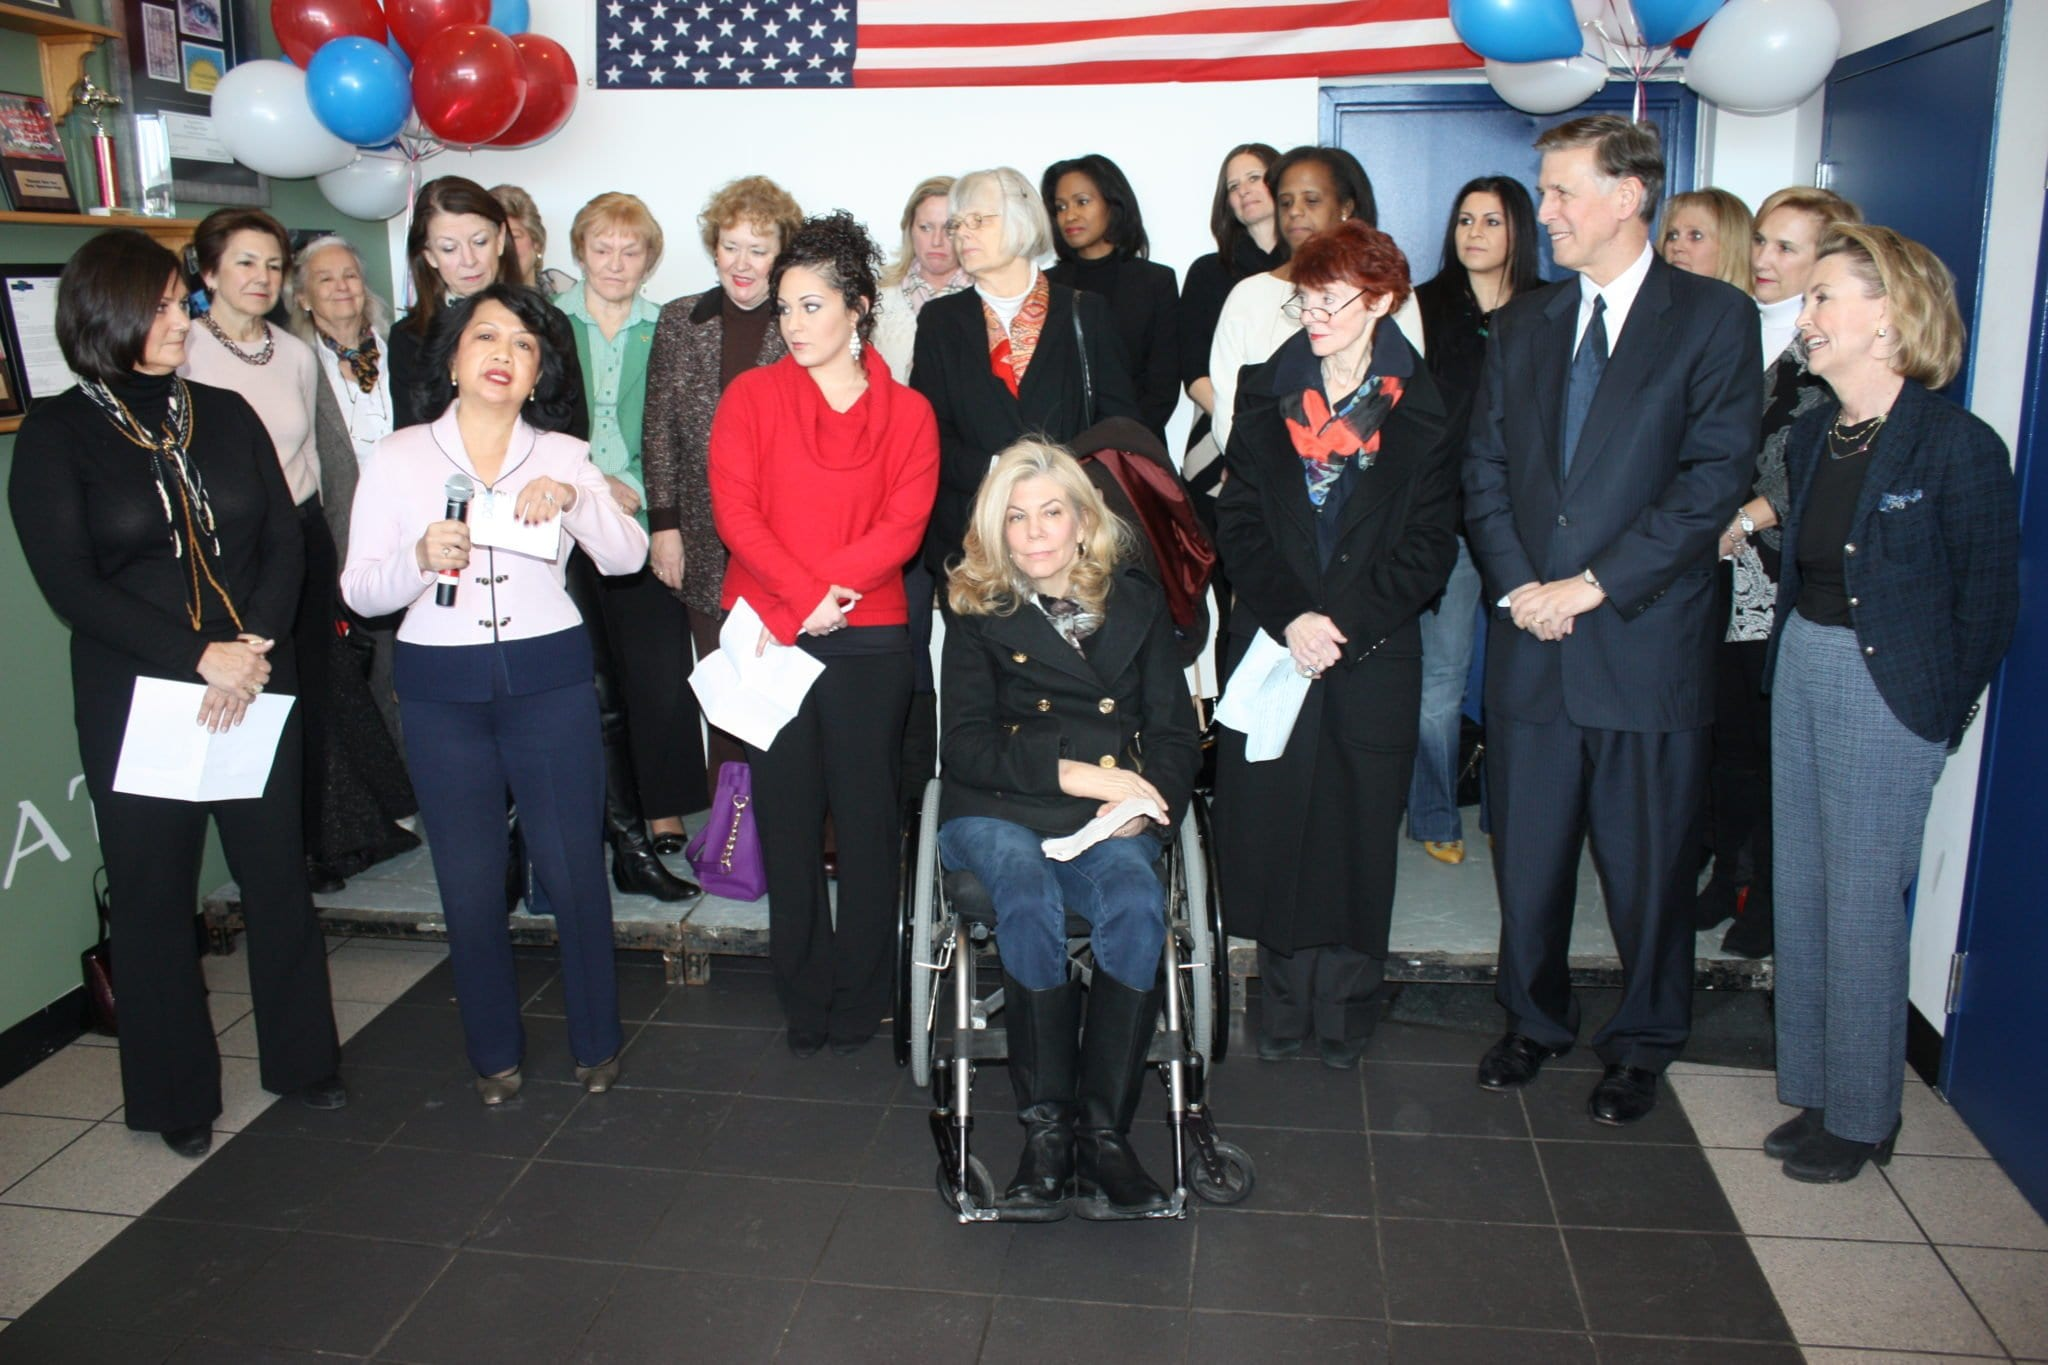 IN A CAMPAIGN KICK-OFF rally at his Falls Church car dealership, U.S. Congressional candidate Don Beyer was accompanied by a large delegation of important women in leadership roles in the 8th District who are supporting him for election in the June 10 primary. (Photo: News-Press)